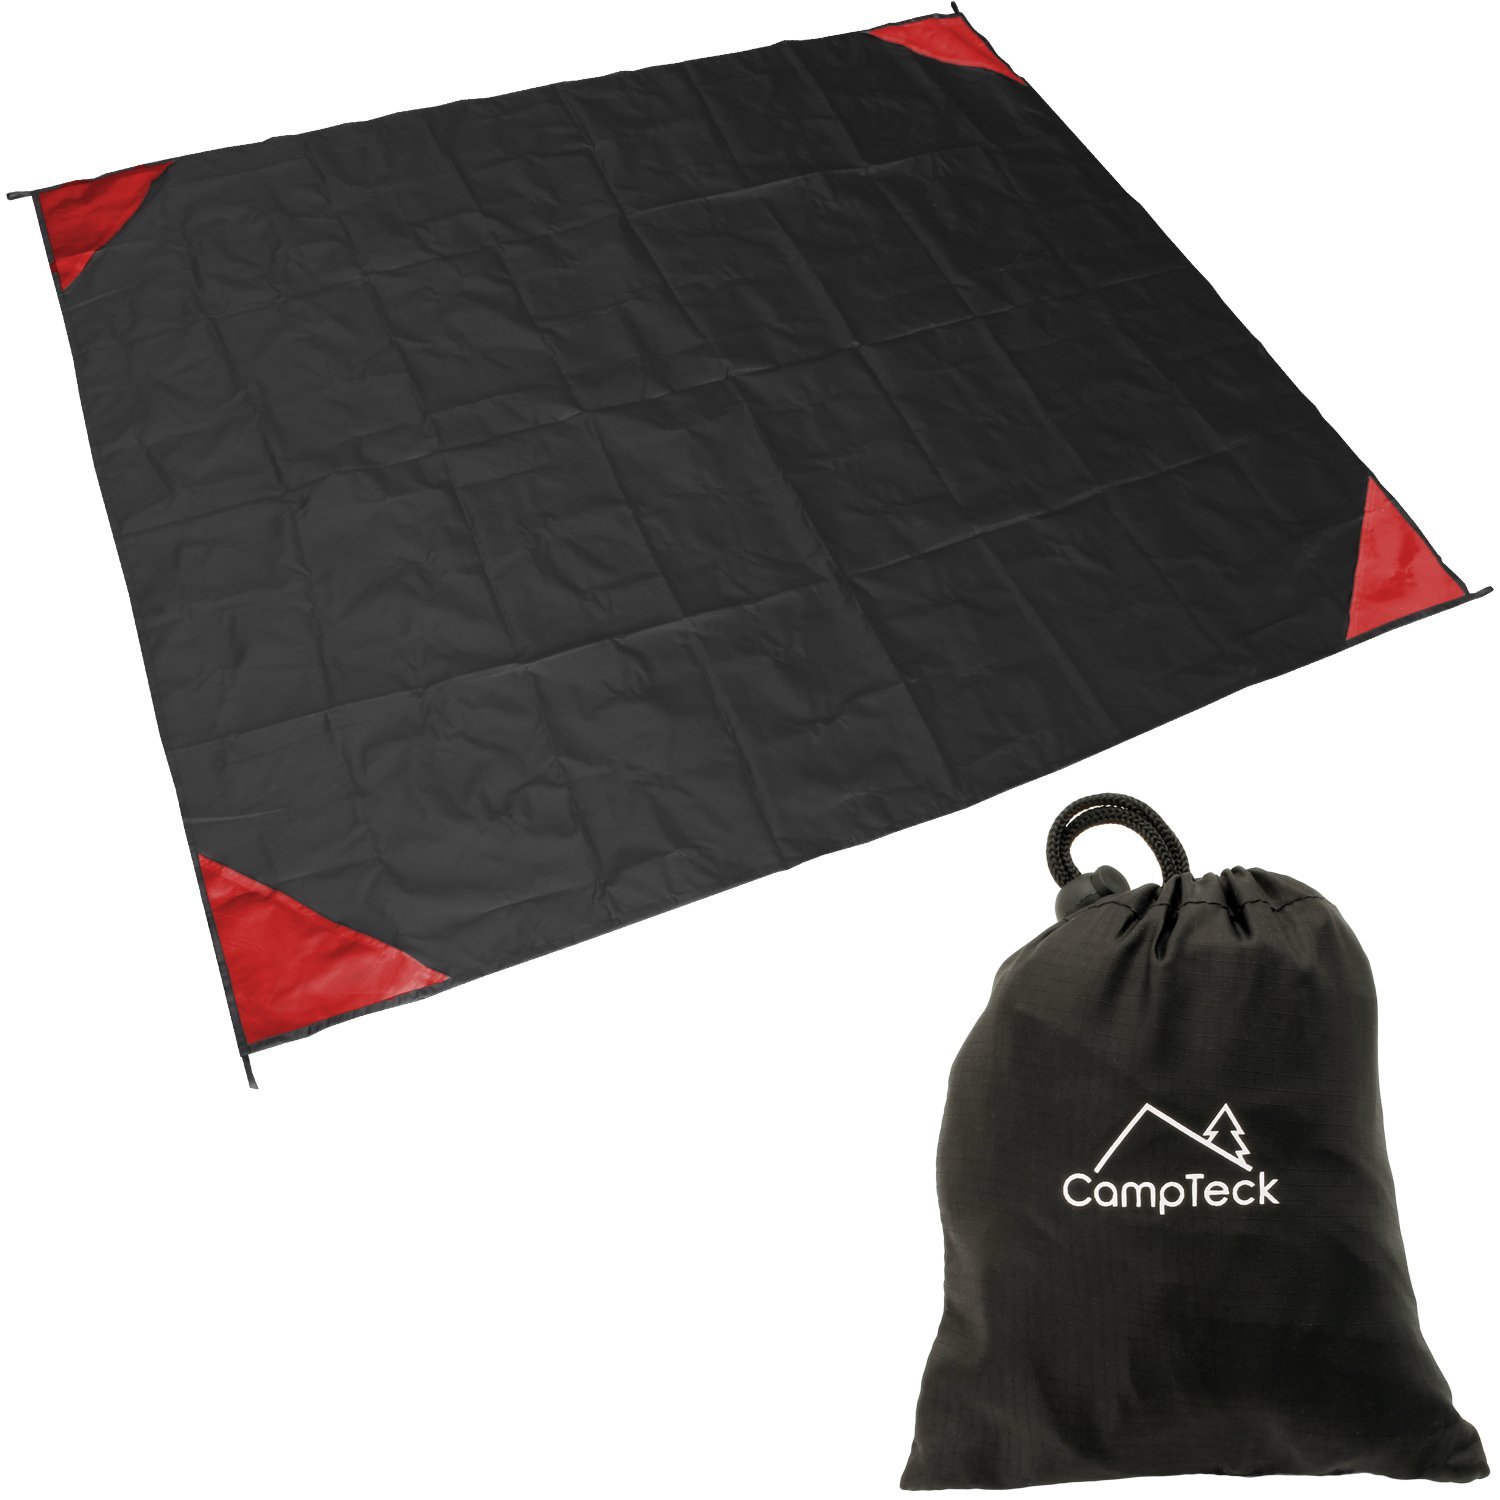 CampTeck U6819 Pocket Picnic Blanket (140 x 170cm) Pocket Groundsheet Water Resistant Polyester Beach Blanket for Outdoor, Hiking, Beach, Camping, Fishing, Travel with Carry Pouch - Black